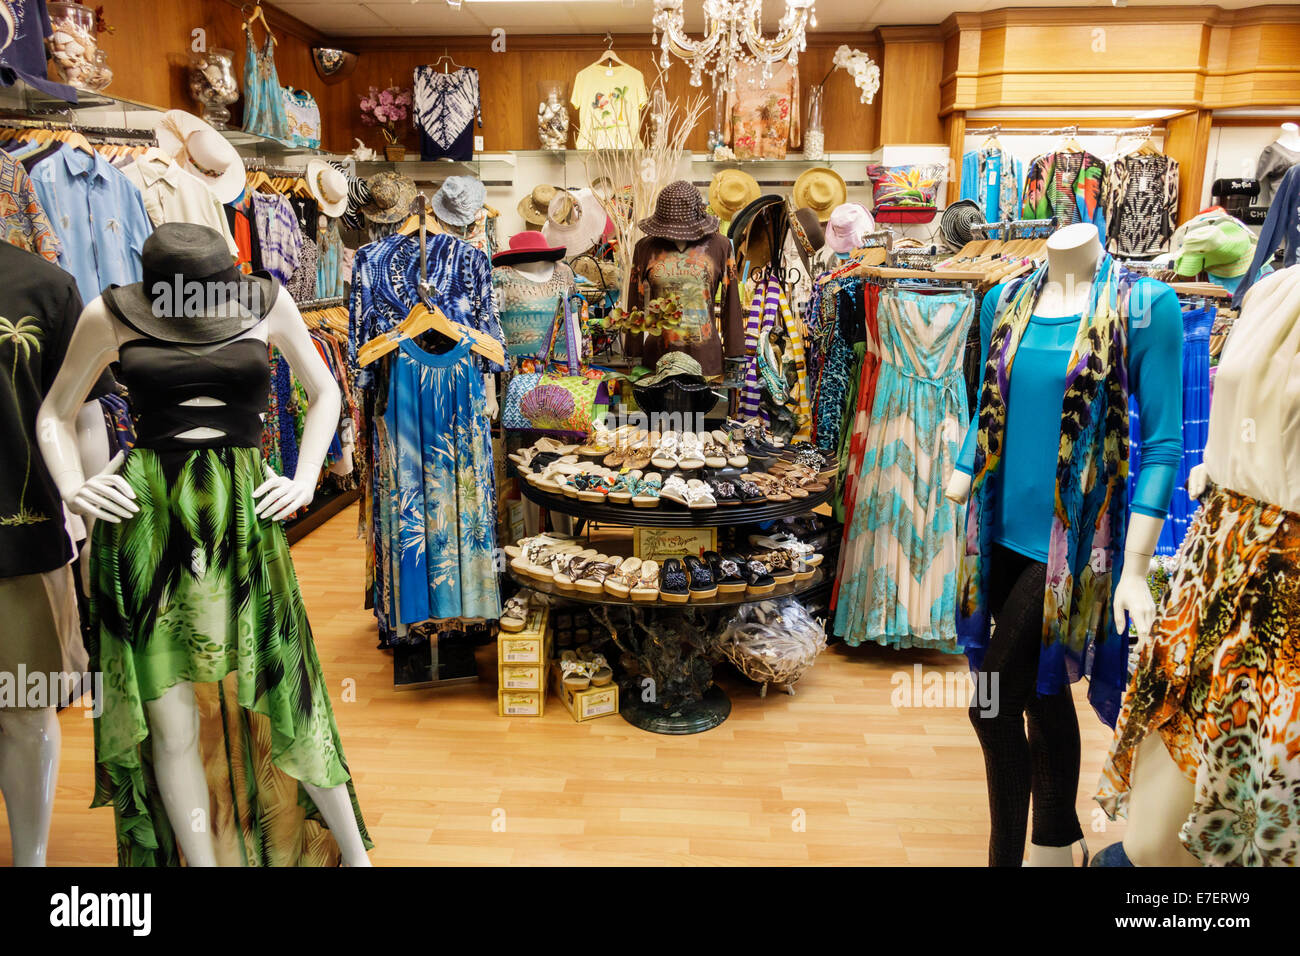 Clothing stores in hawaii